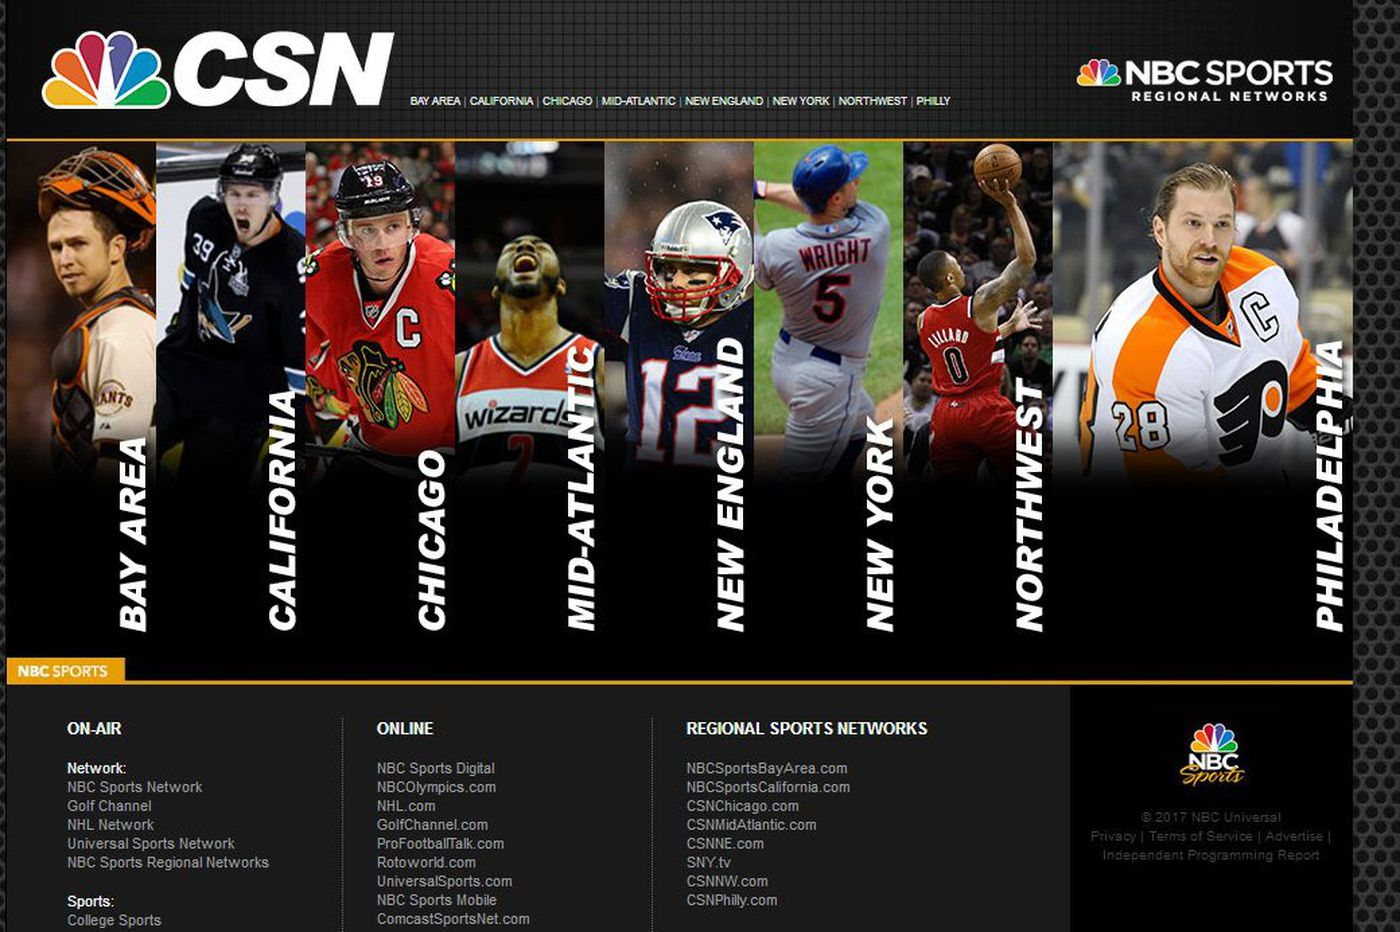 CSN Philadelphia brand deep-sixed, network name officially changes to NBC